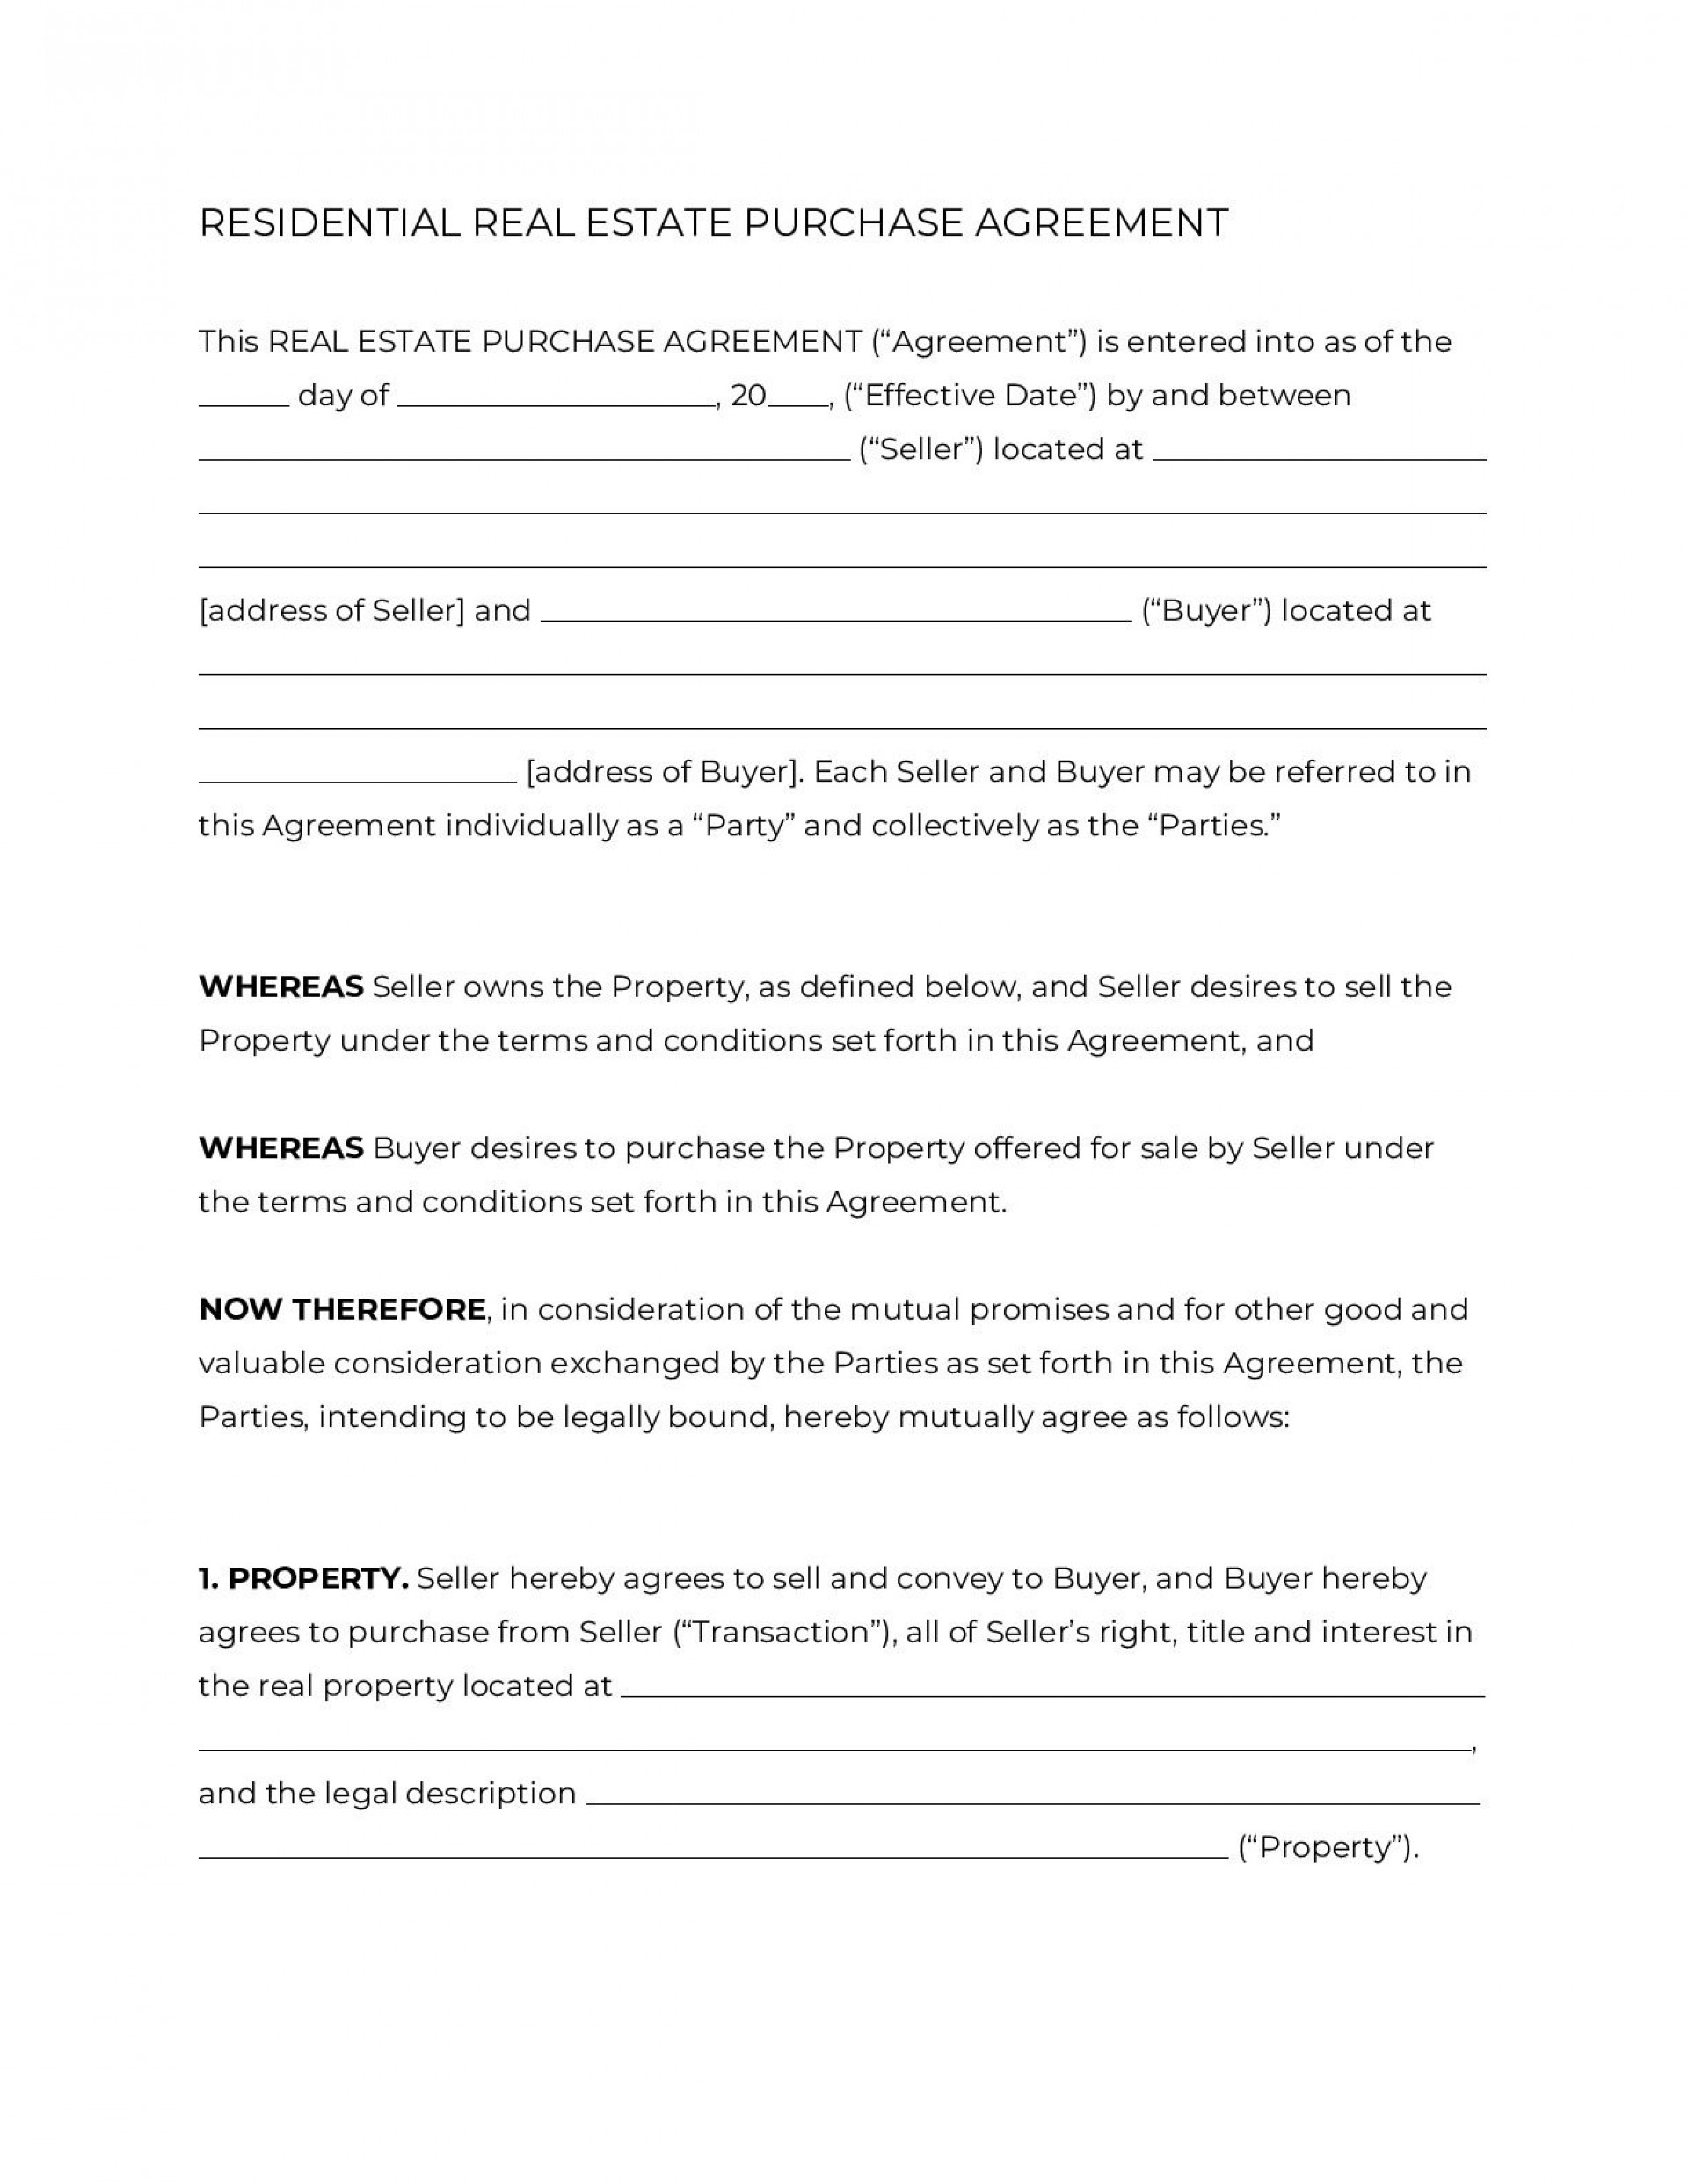 009 Wondrou Real Estate Buy Sell Agreement Template Montana Highest Quality  Form Free1920